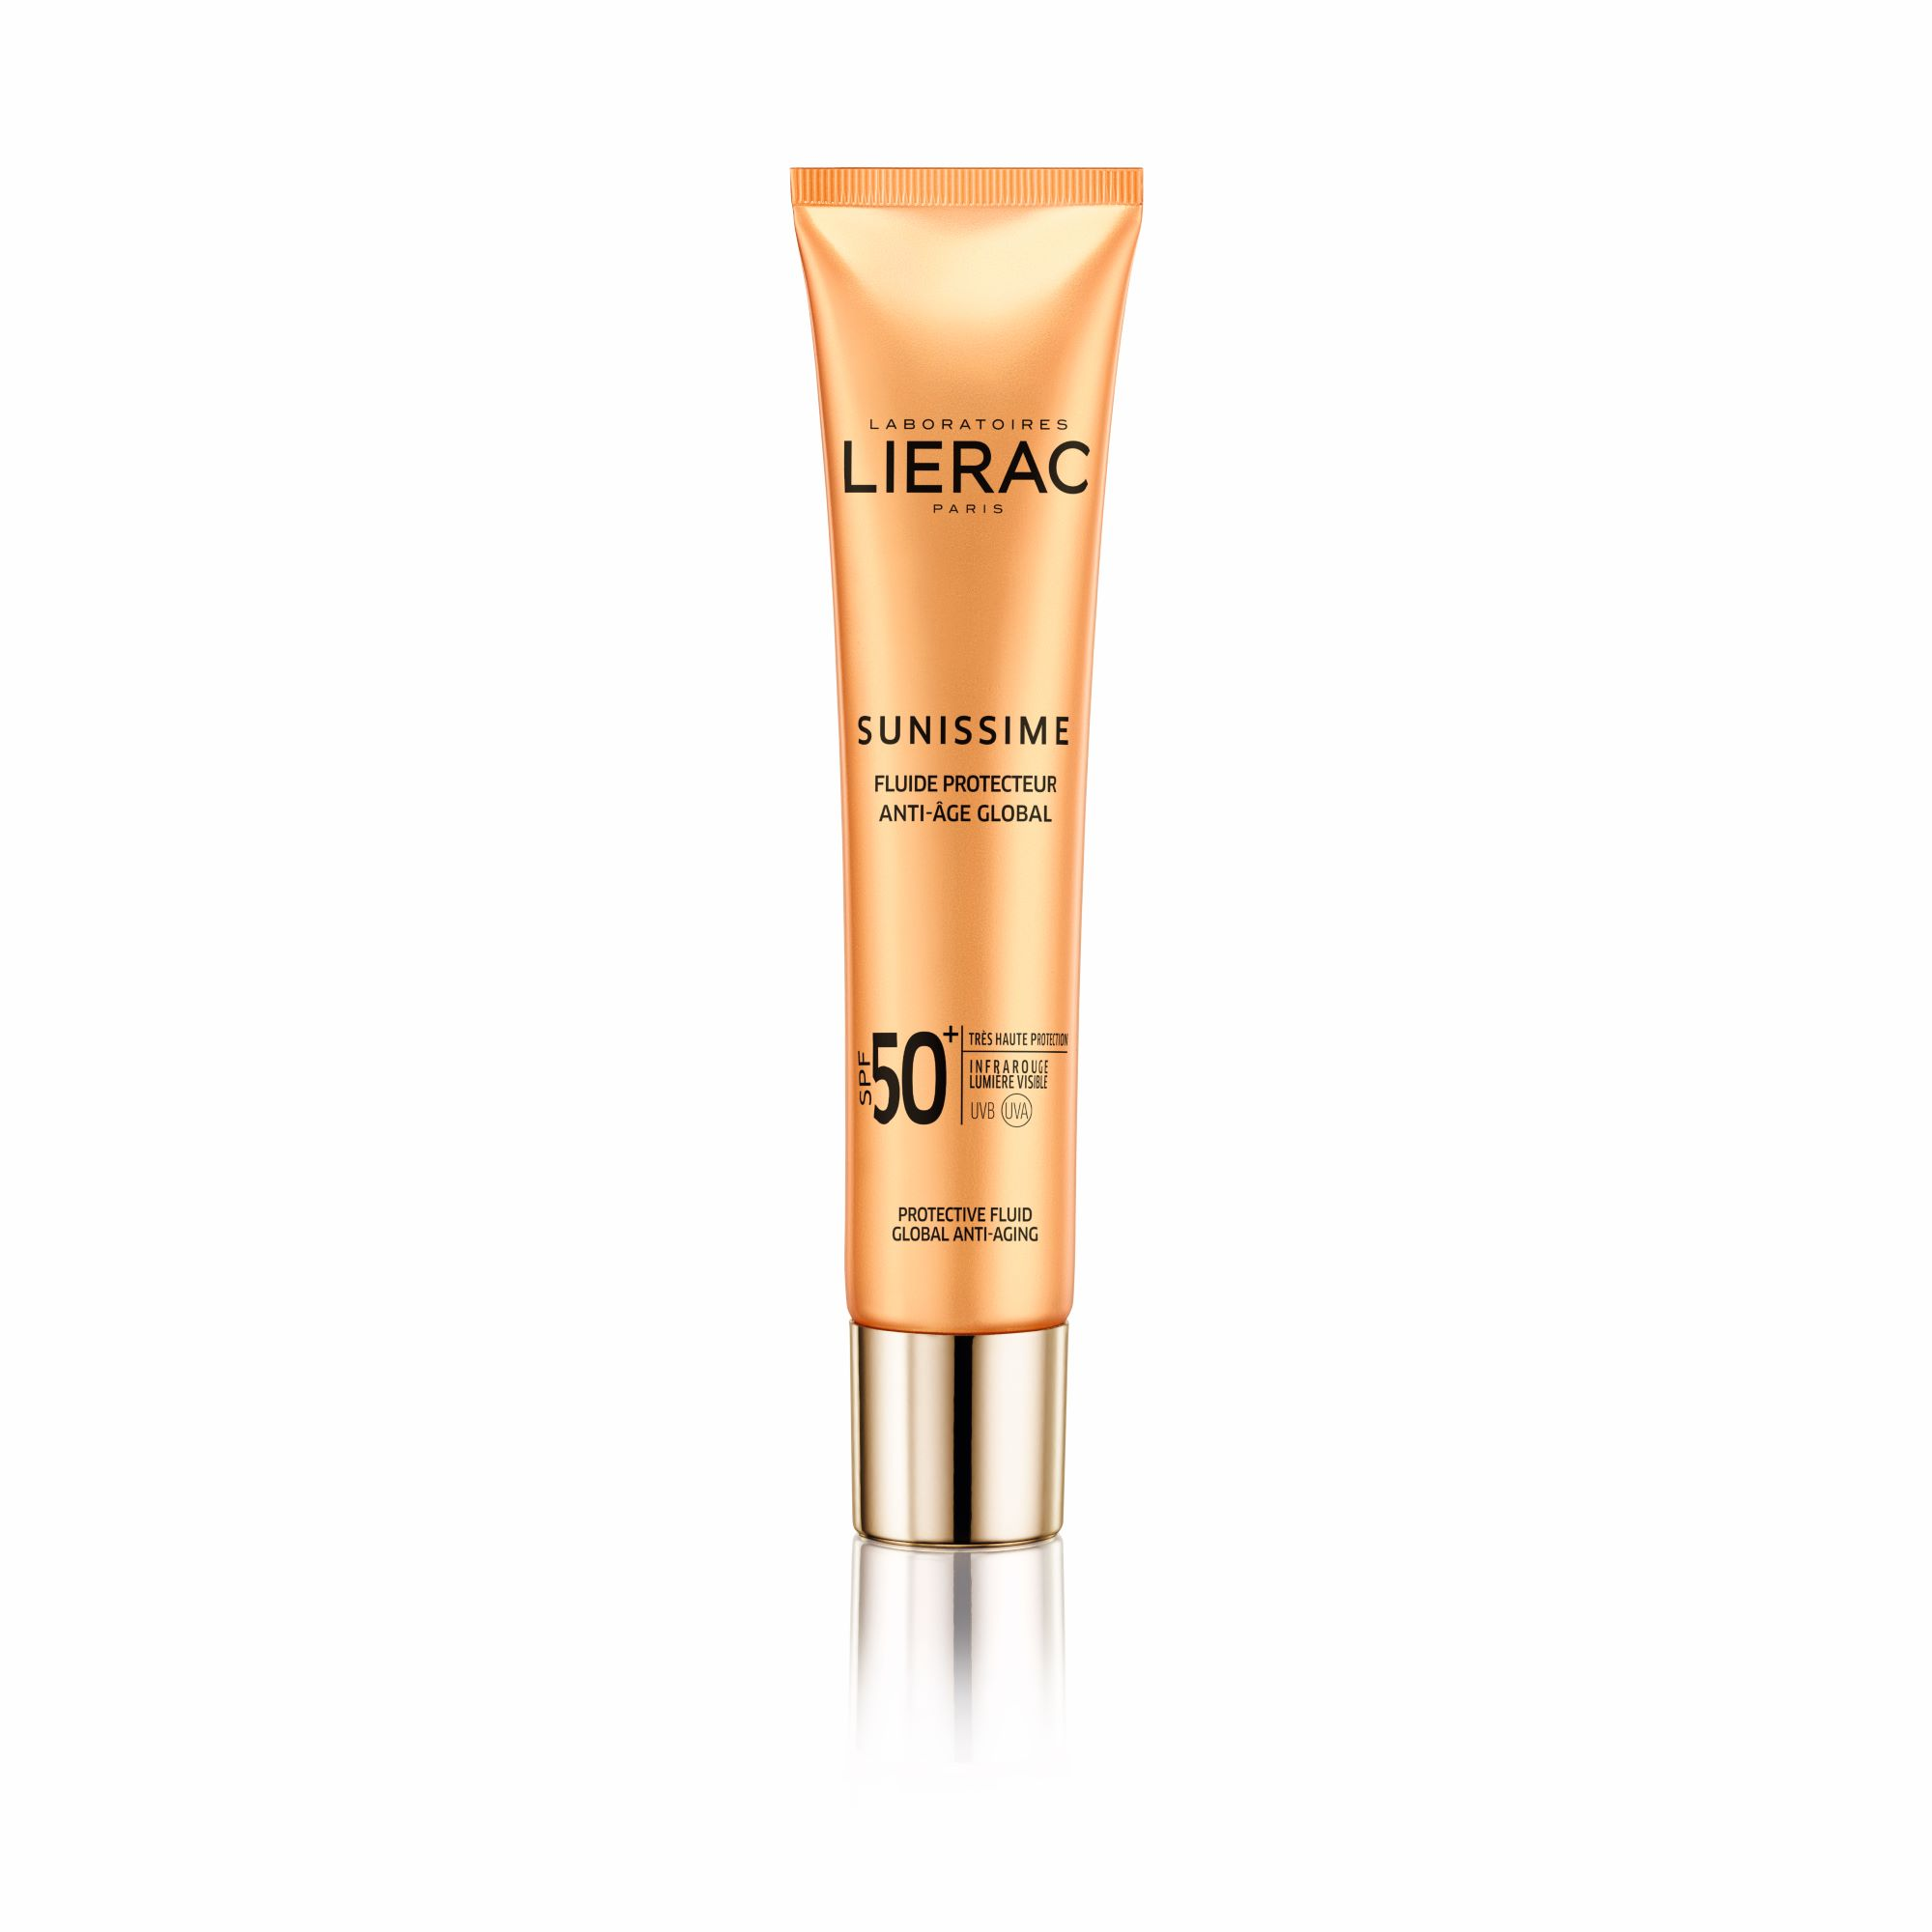 LIERAC - Sunissime Protective Fluid Global Anti-Aging SPF50+ Λεπτόρρευστη Αντηλιακή Κρέμα - 40ml